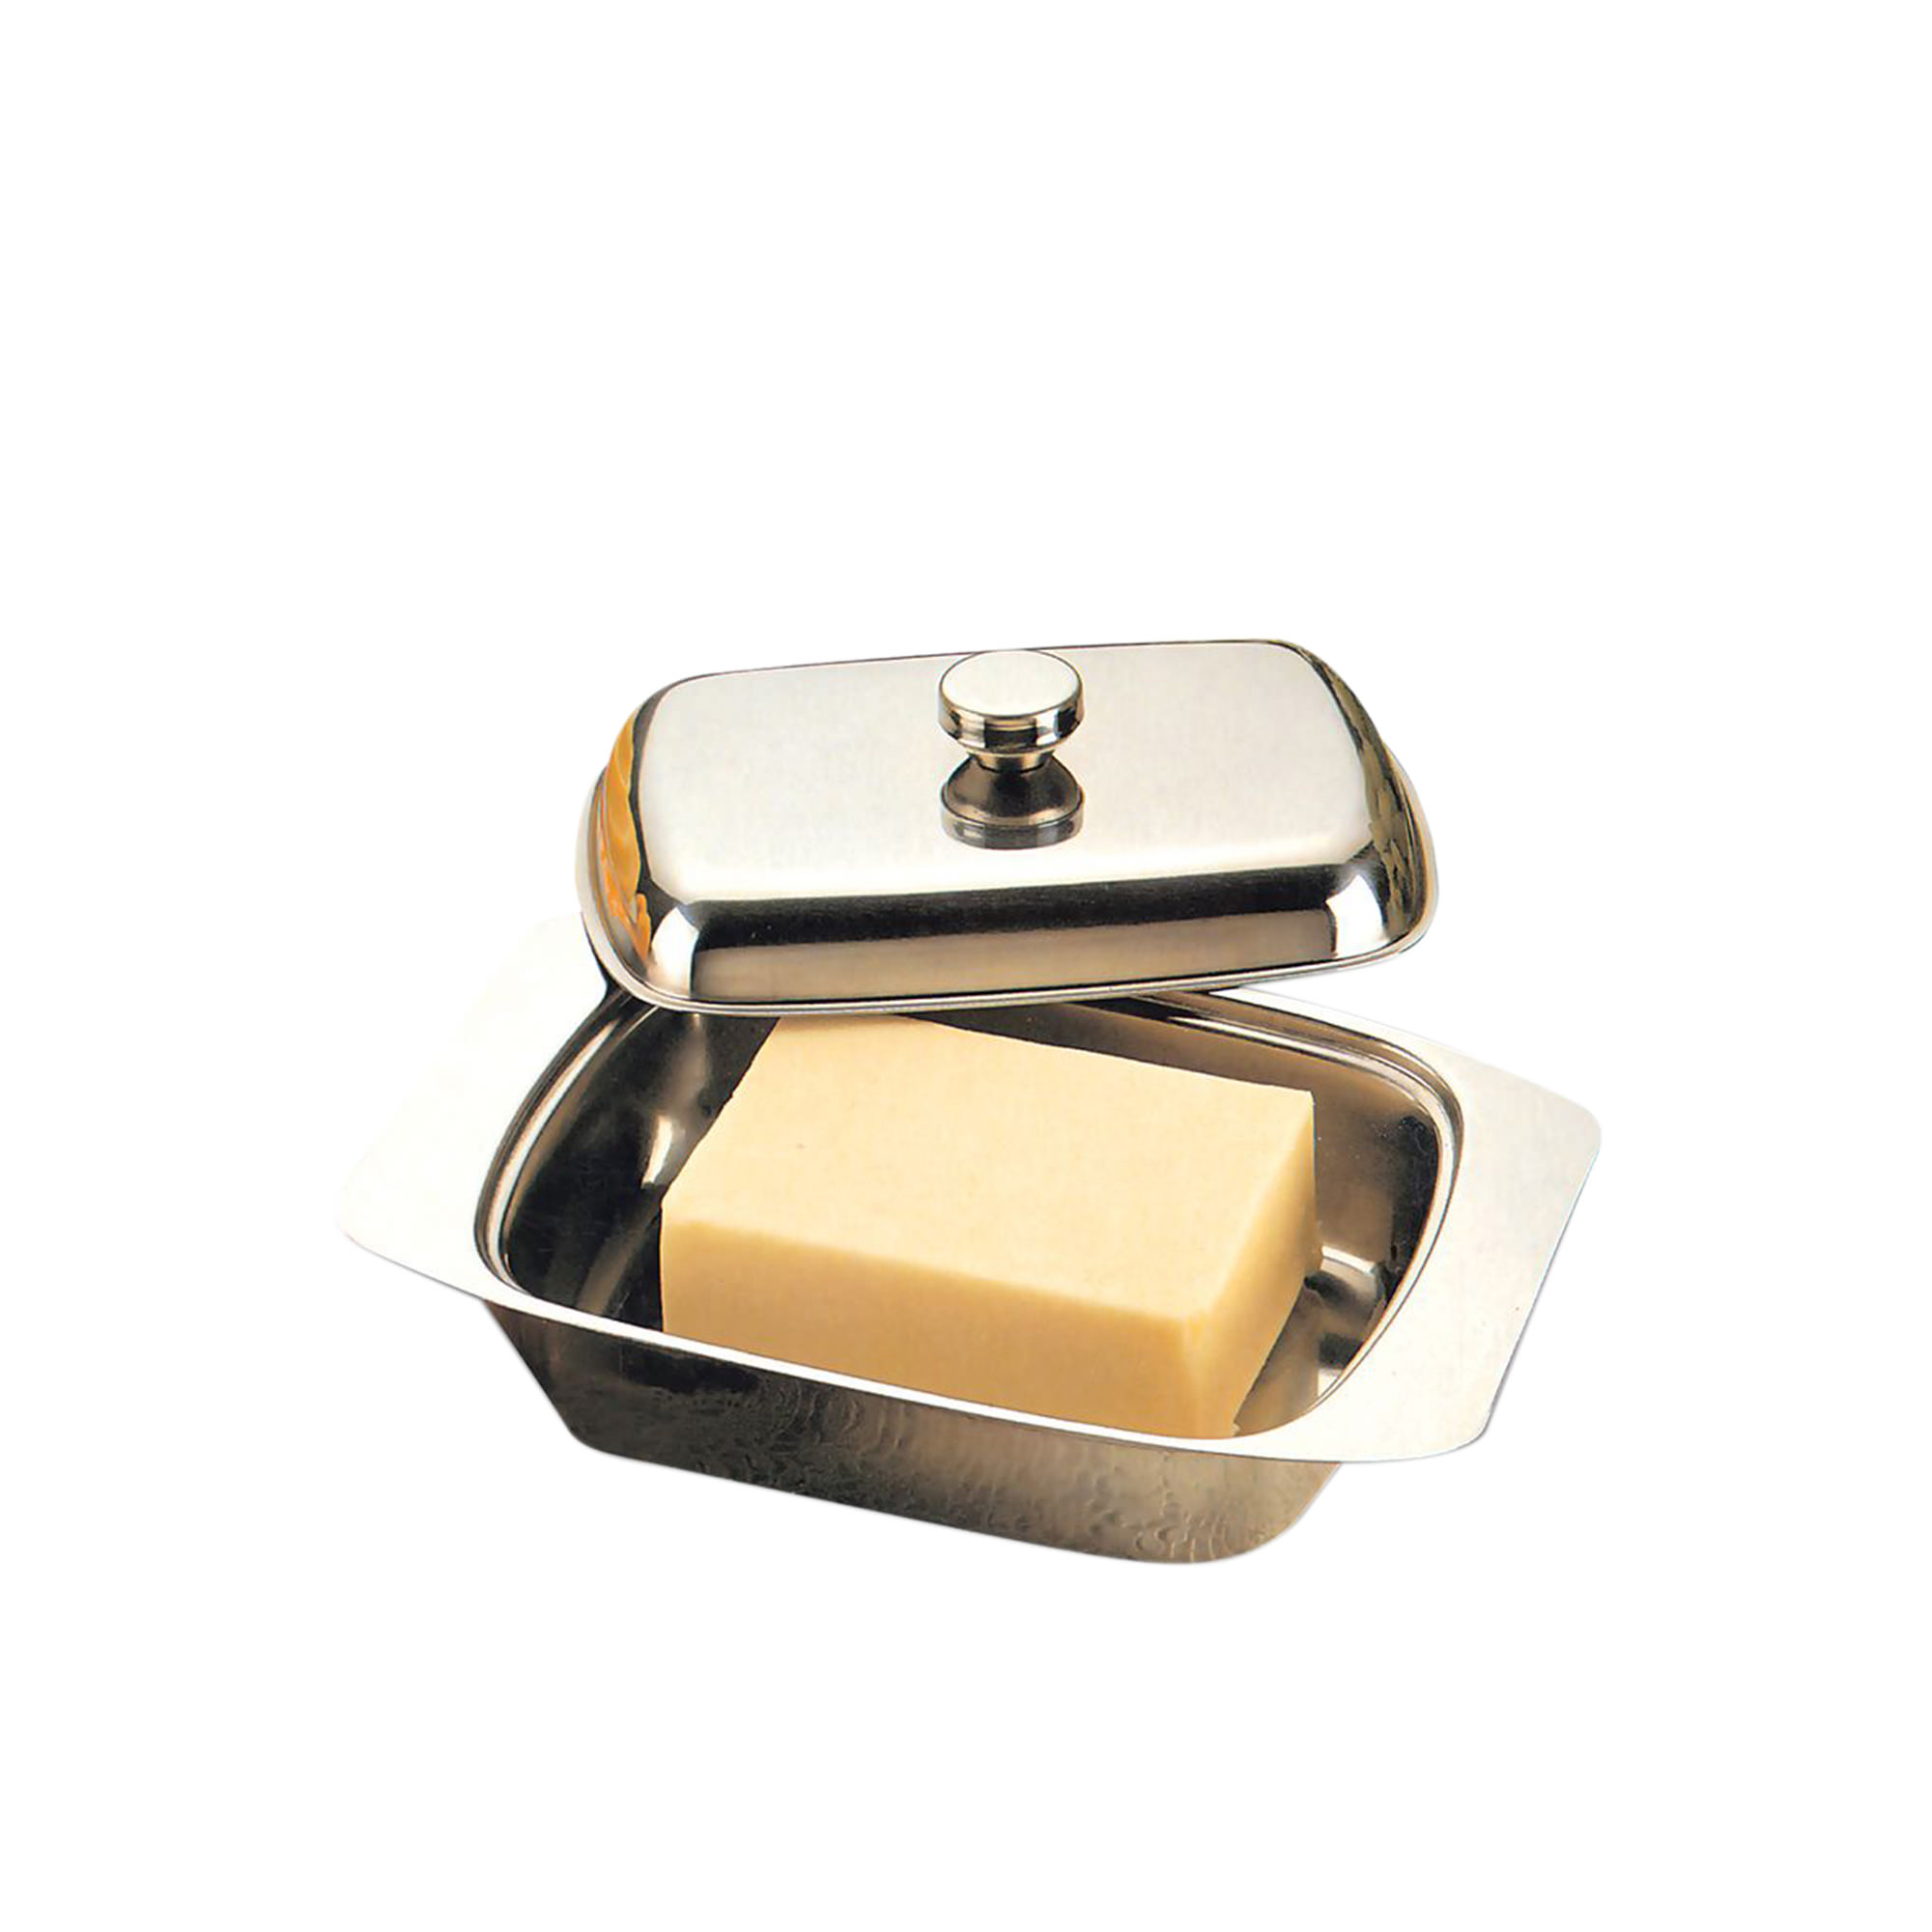 D.Line Butter Dish Stainless Steel with Cover